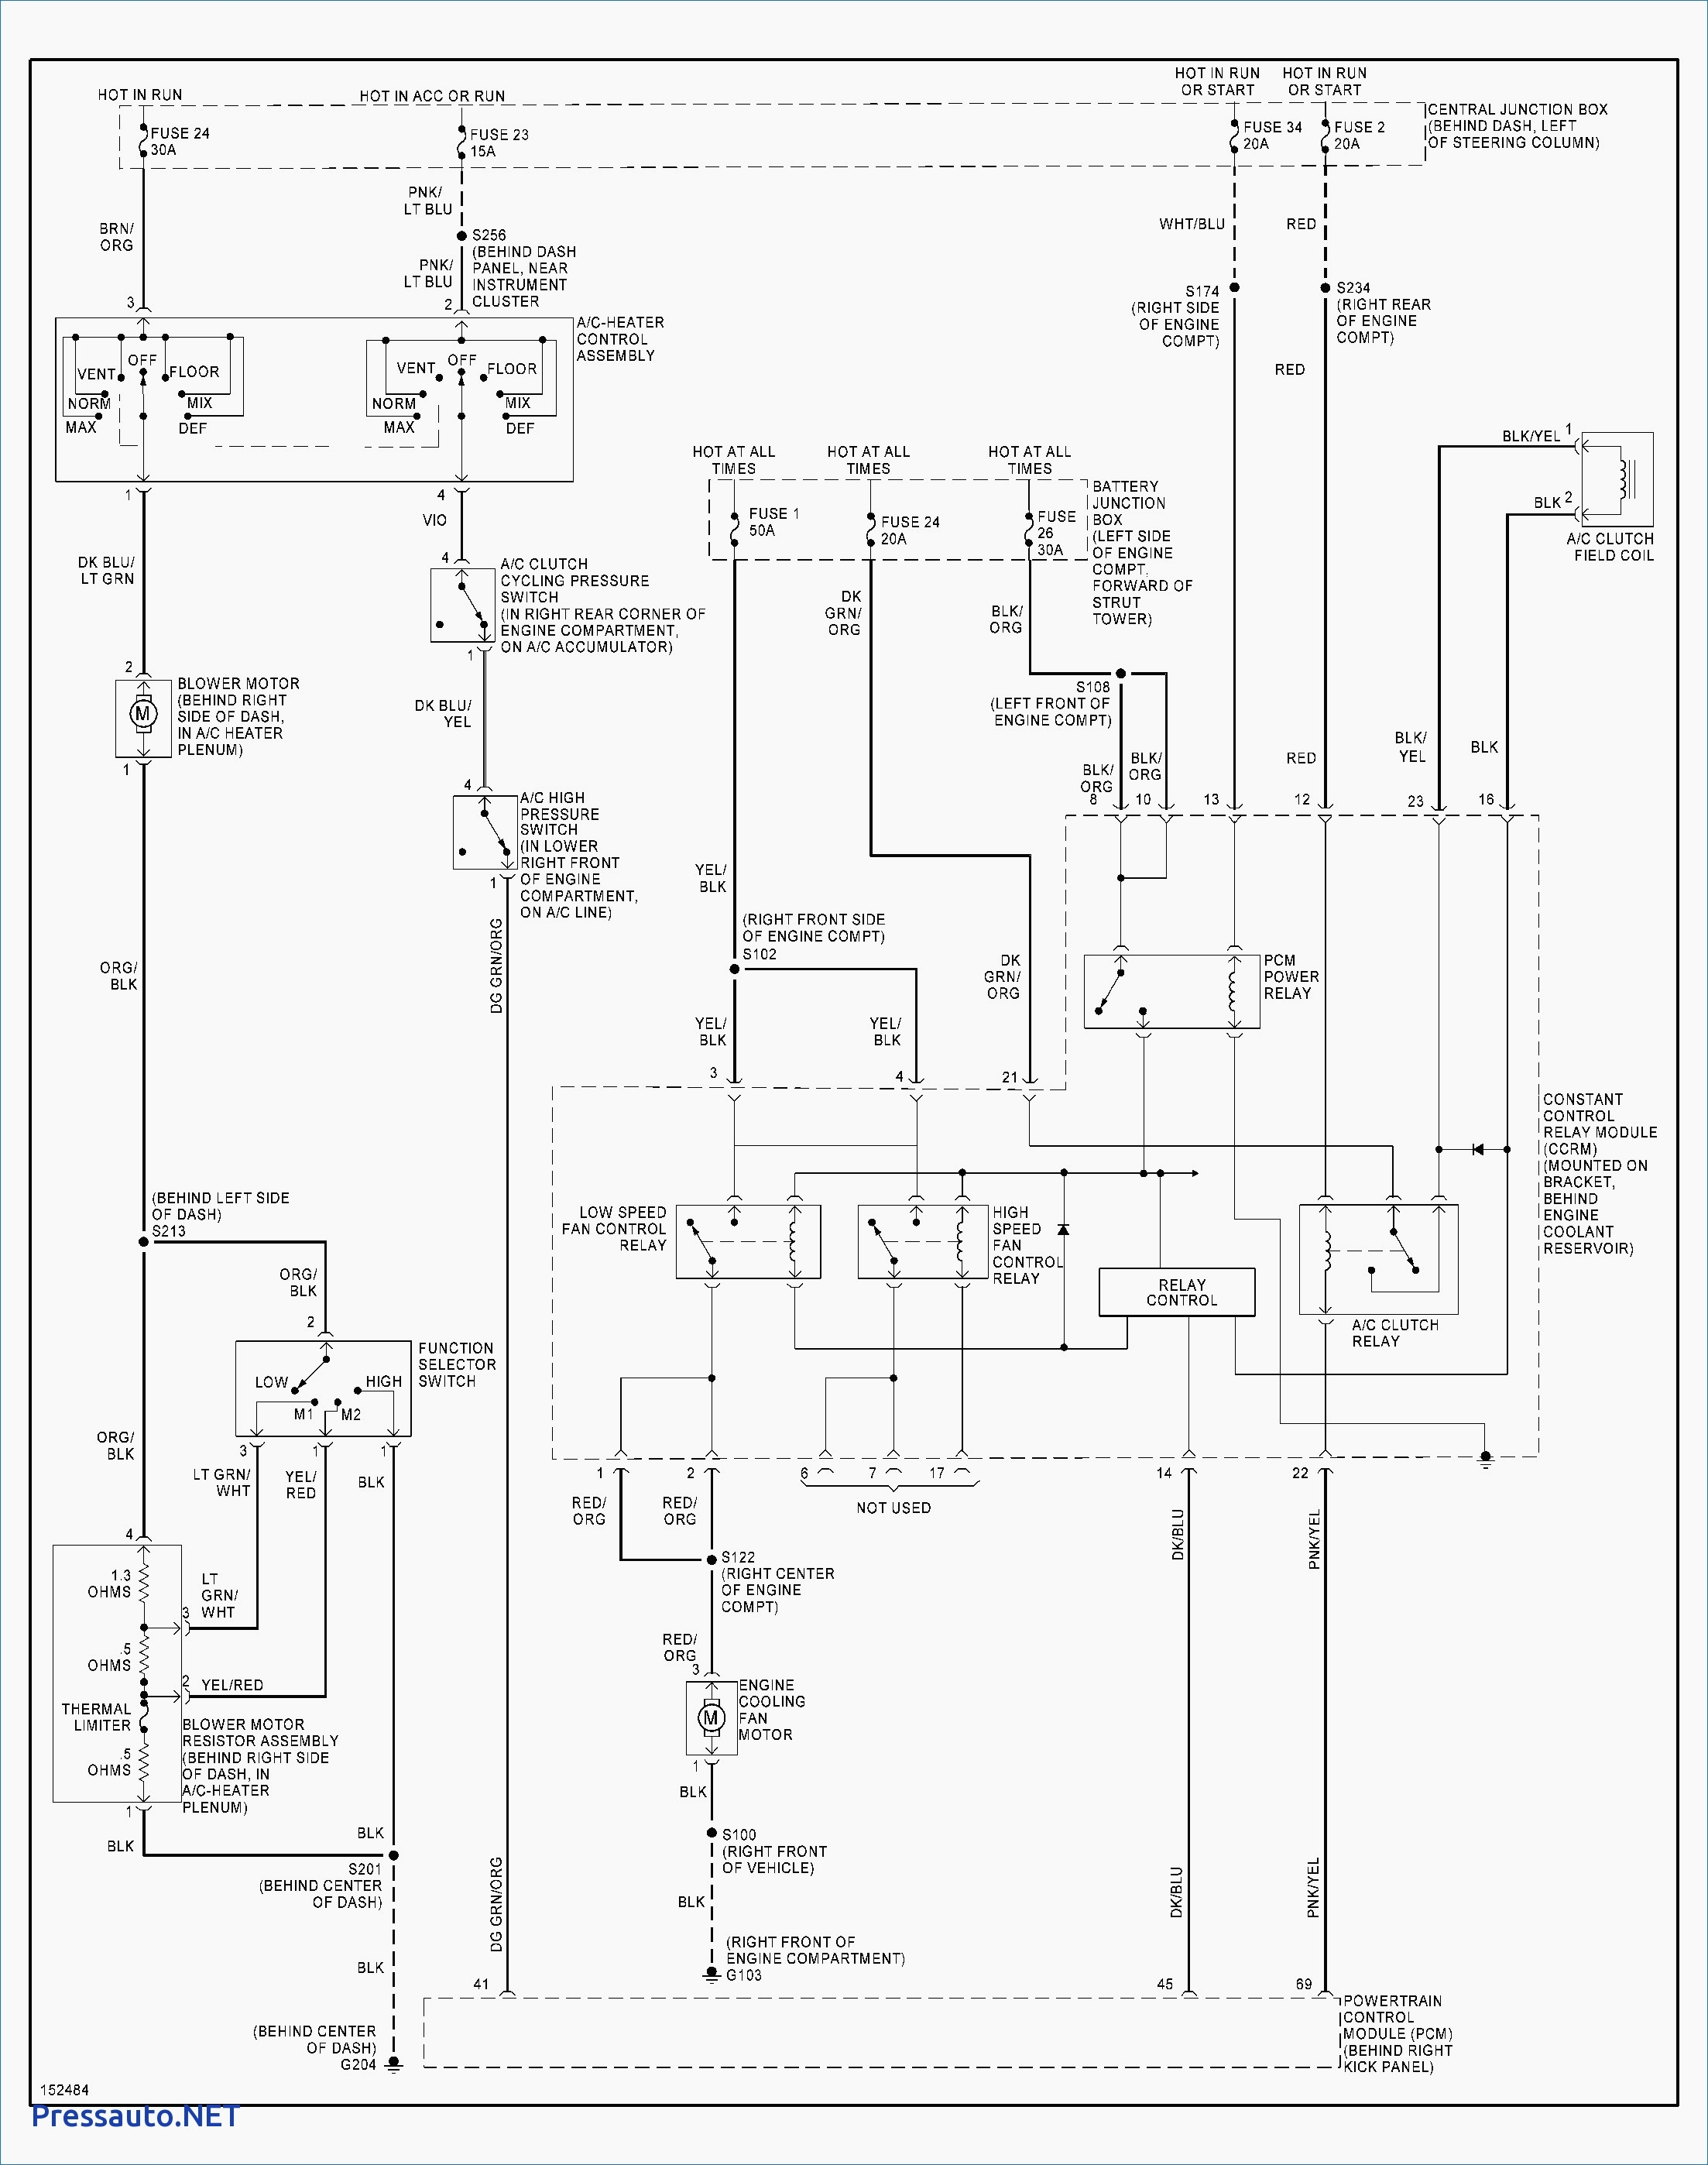 Condor Pressure Switch Wiring Diagram